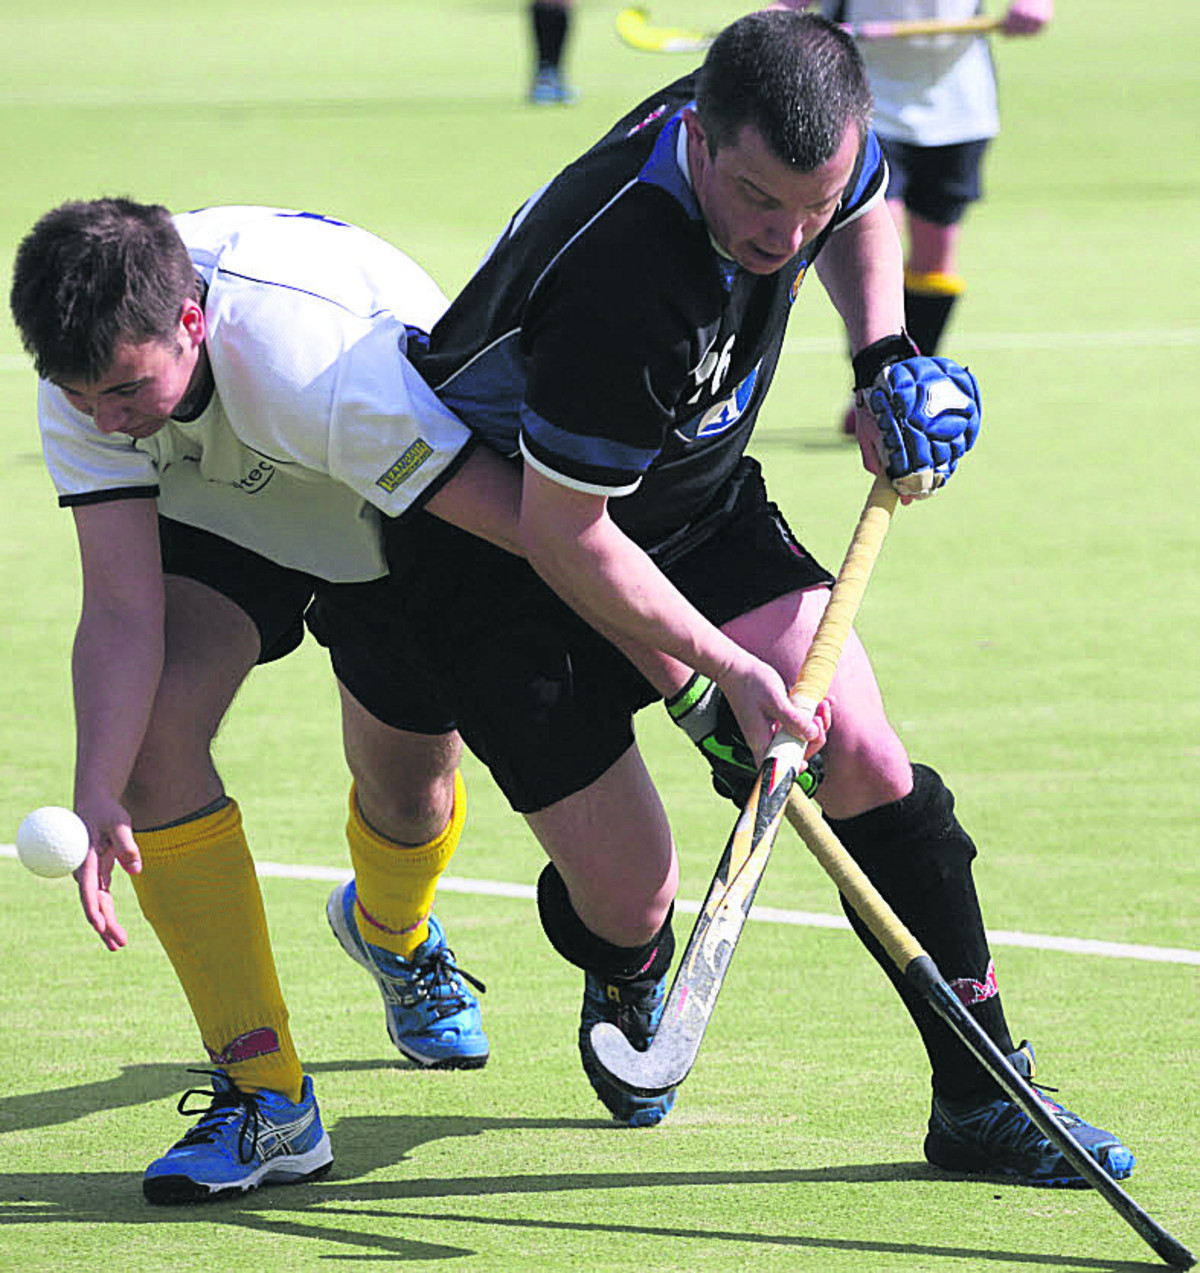 Devizes' Roger Edwards (black) battles with Team Bath Buccaneers 4th's Will Mainwaring during Saturday's 5-3 win, which wrapped up promotion